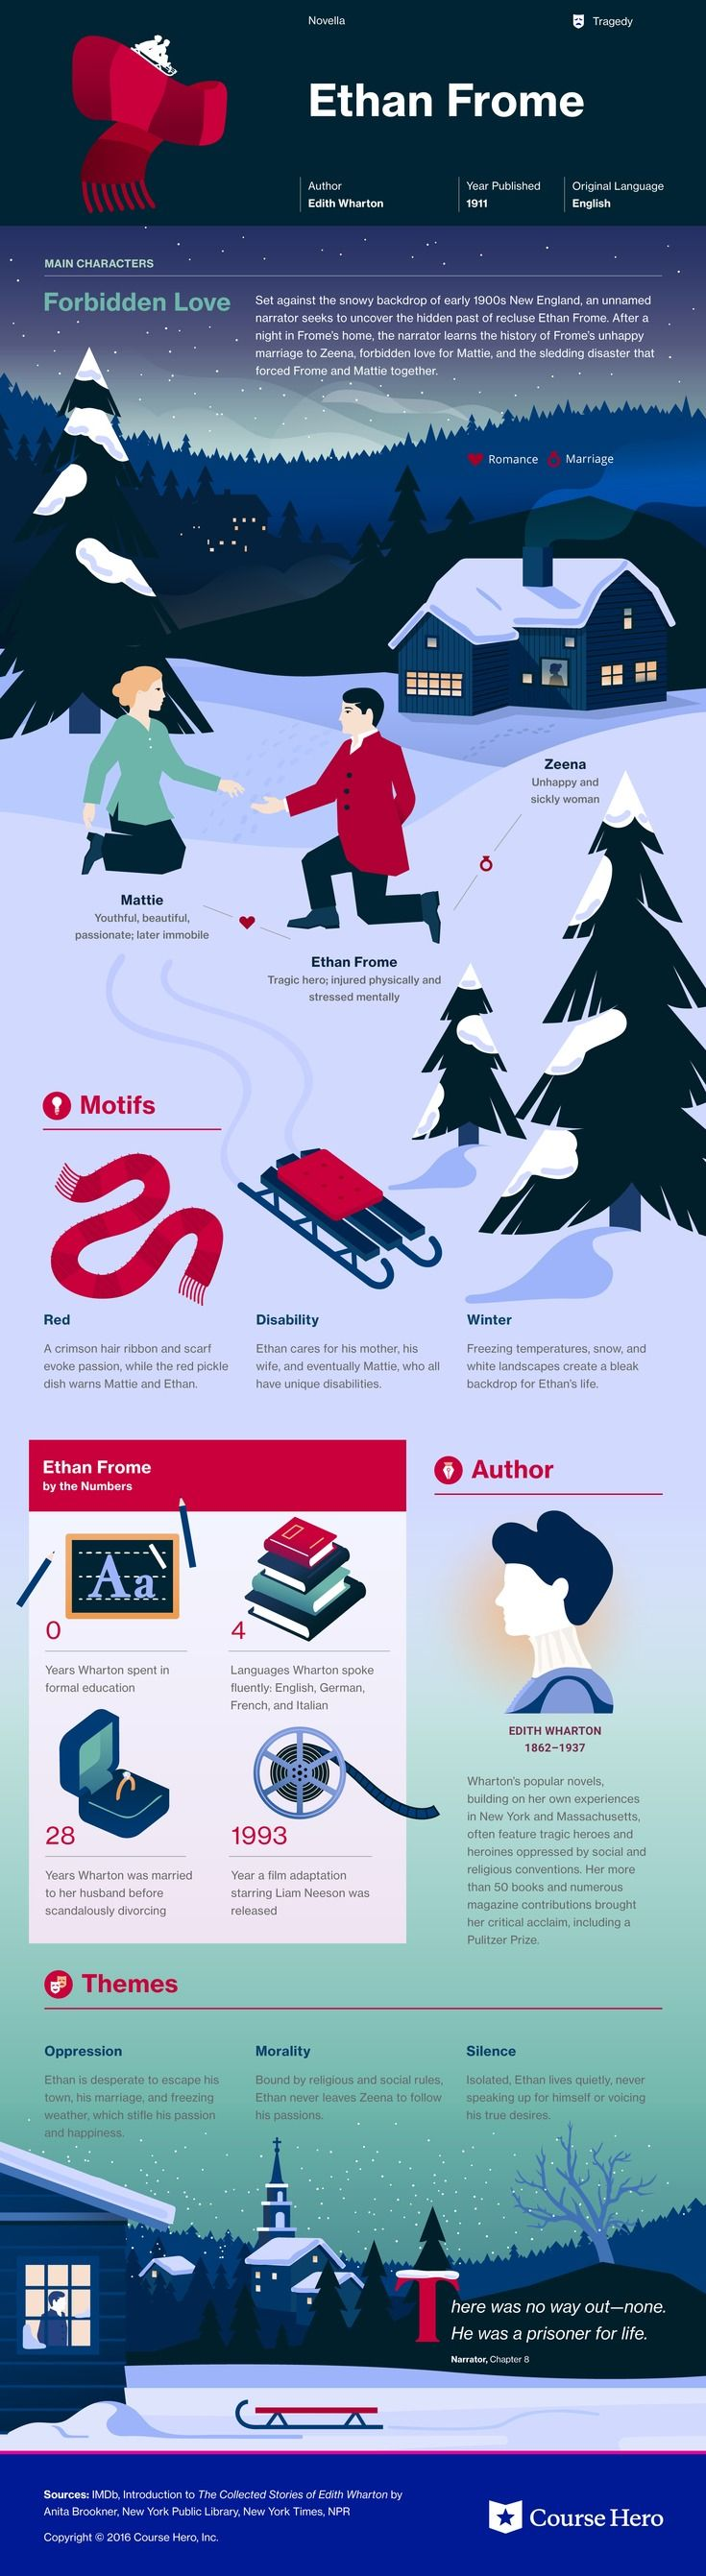 This @CourseHero infographic on Ethan Frome is both visually stunning and informative!